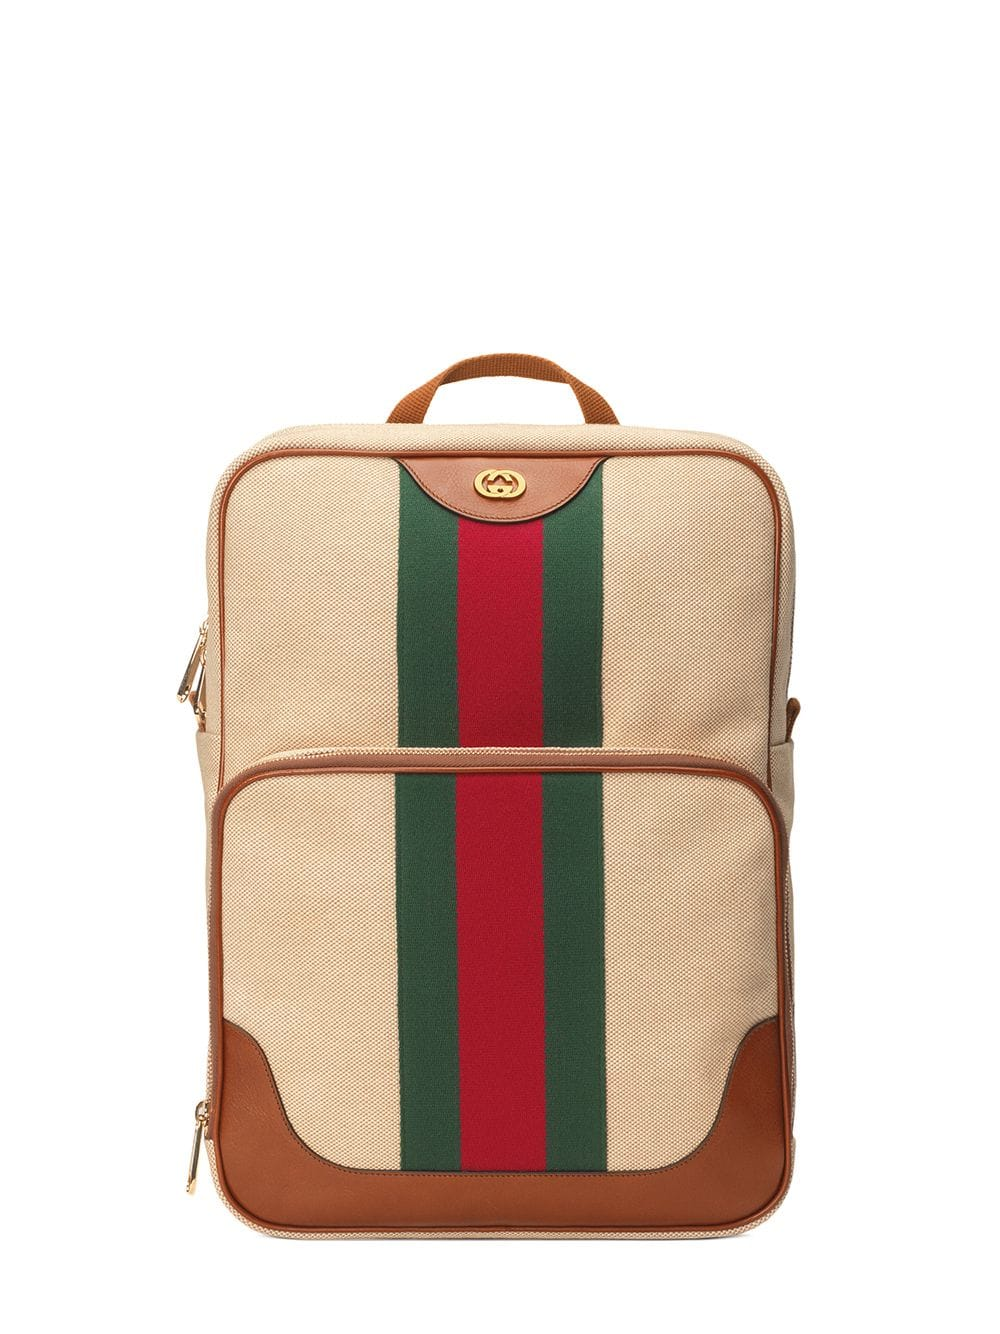 783f790f0 GUCCI GUCCI VINTAGE CANVAS BACKPACK - BRAUN. #gucci #bags #leather #lining